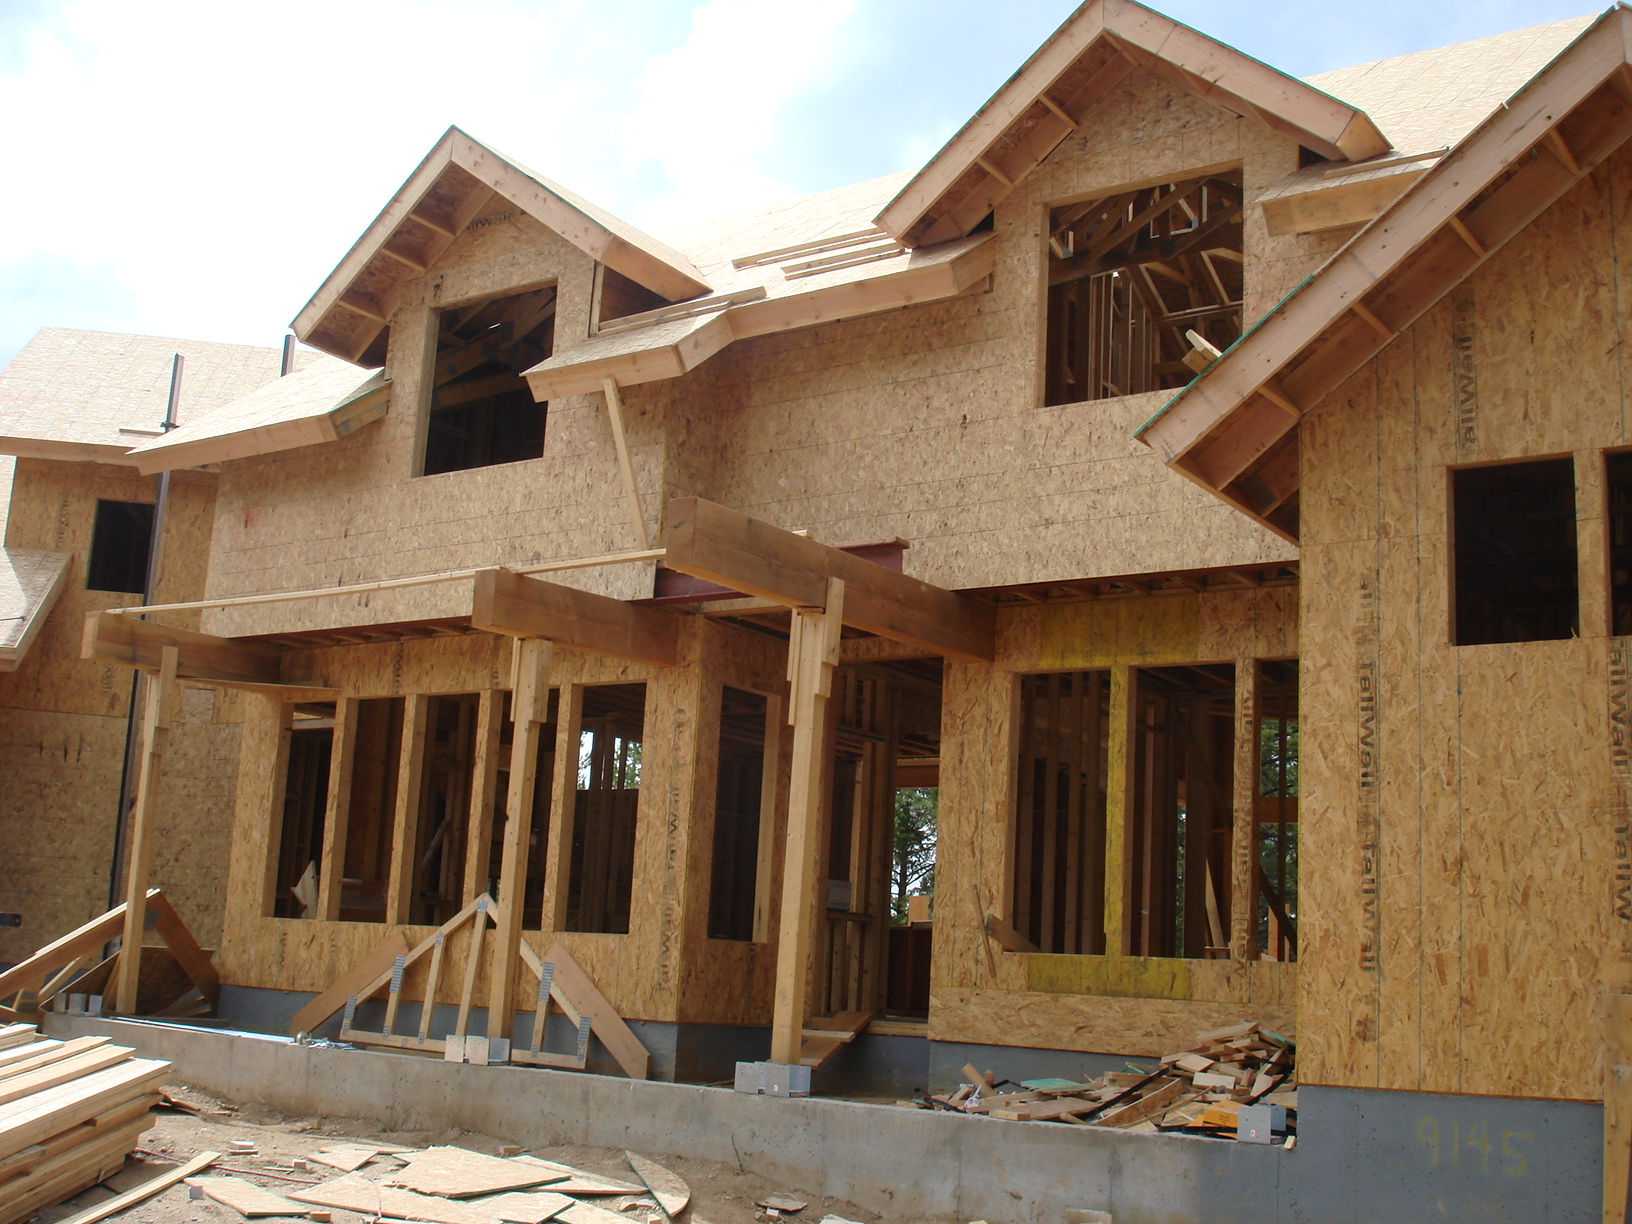 Osb lapok osb abh system kft for 5 structural types of log homes